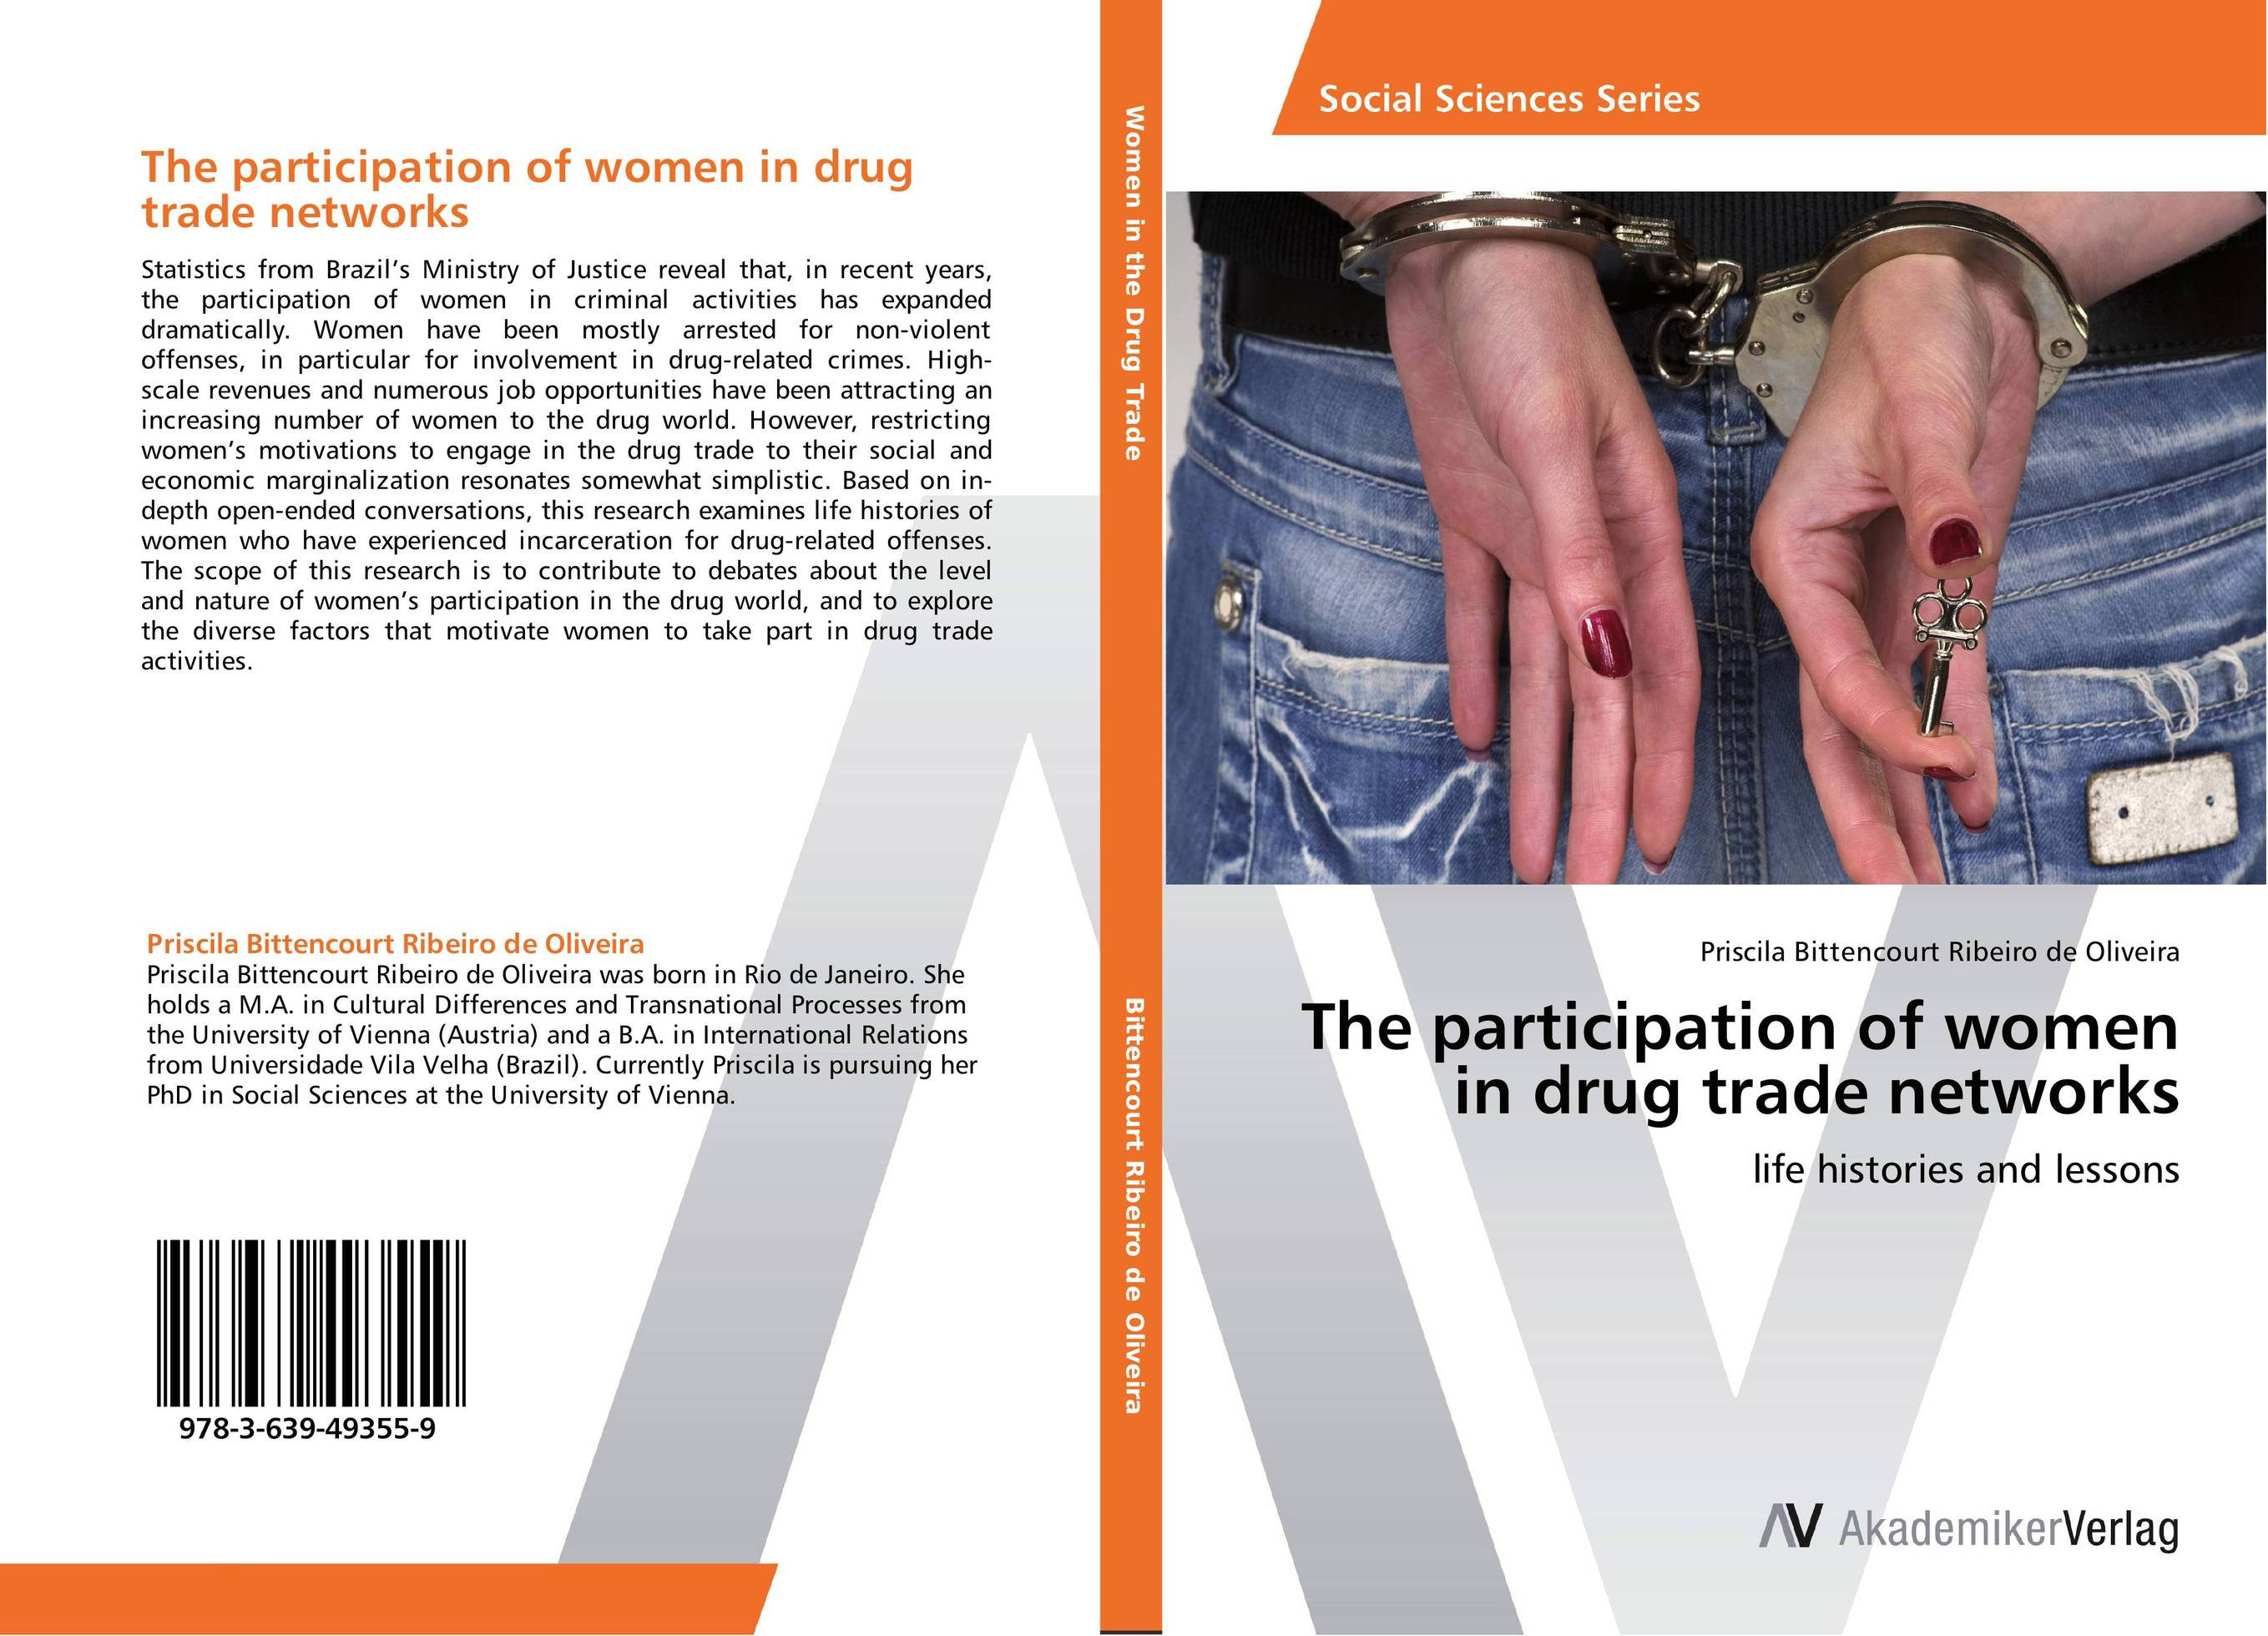 The participation of women in drug trade networks